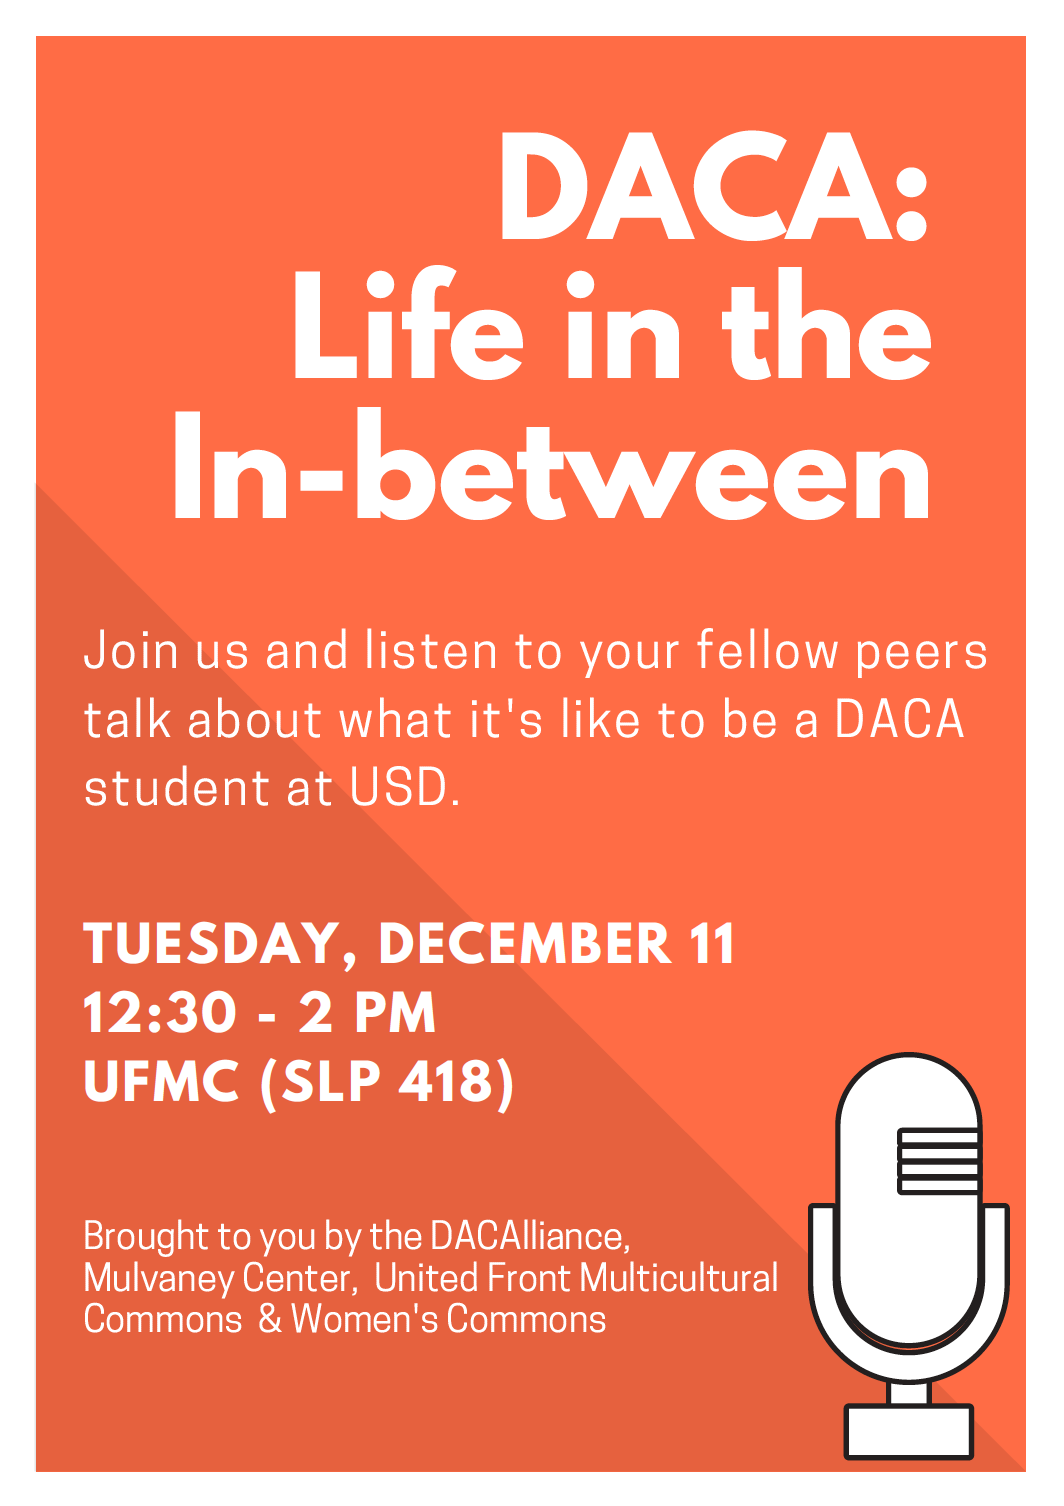 DACA: Life in the In-between